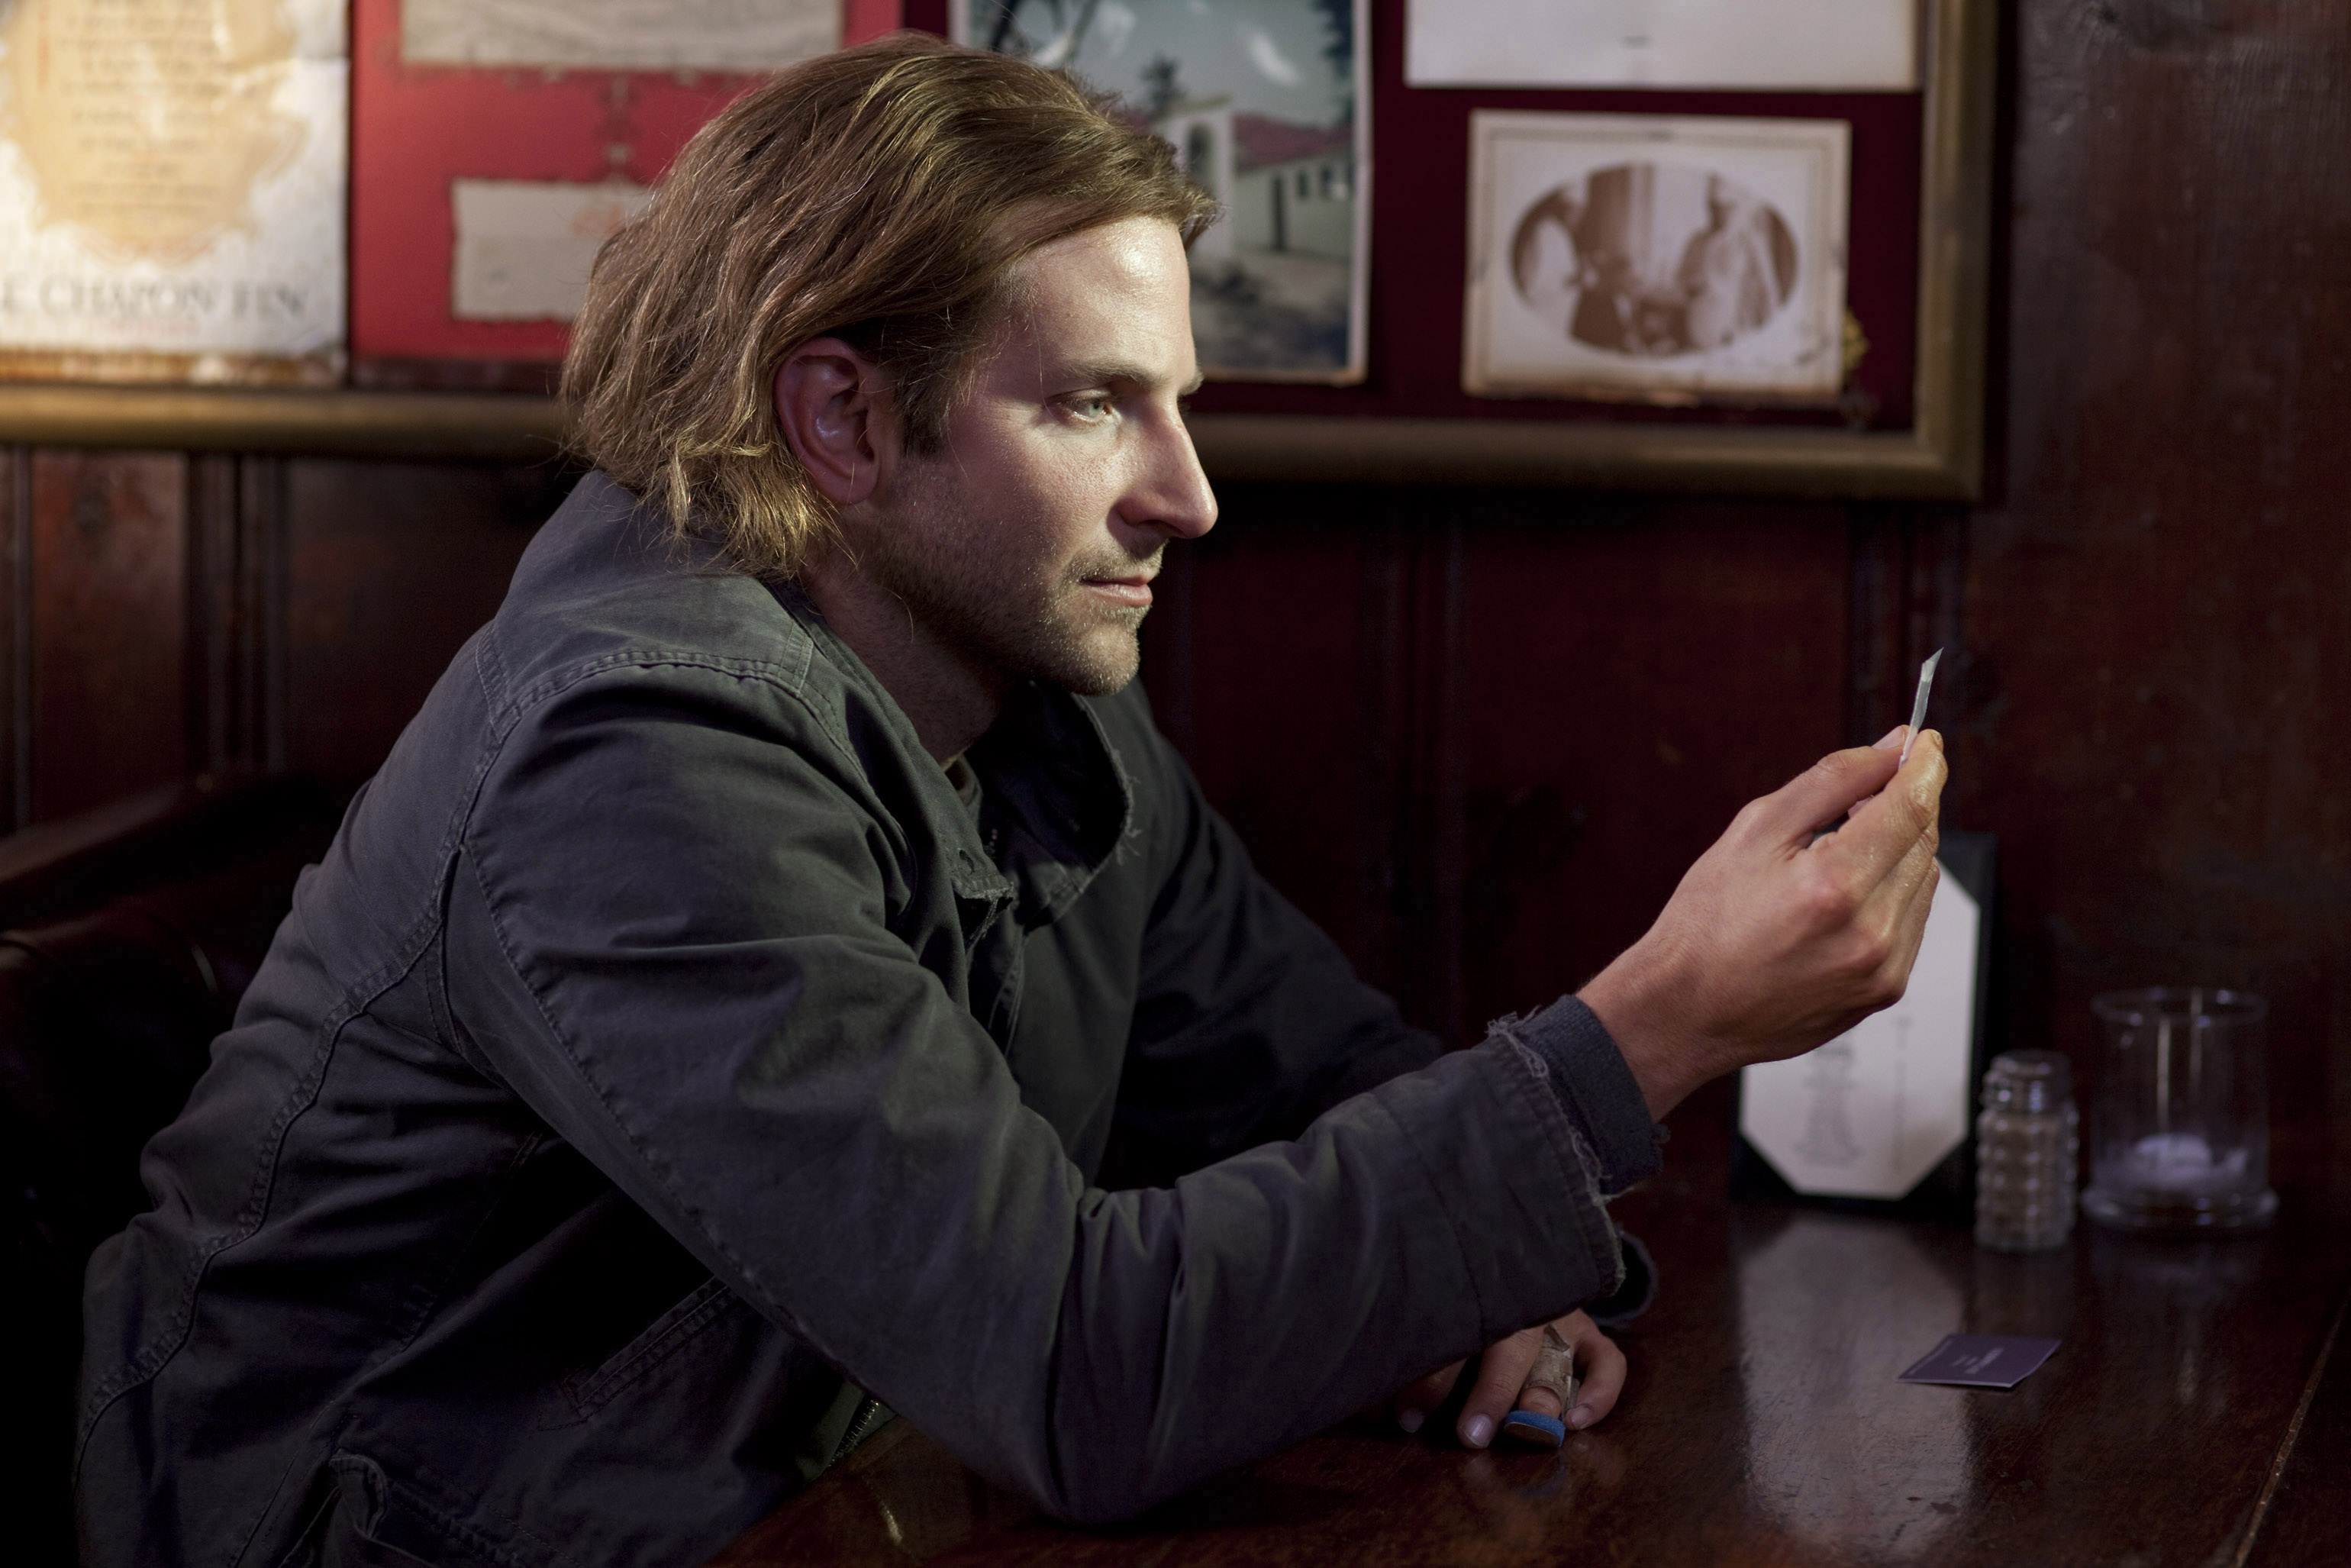 The original 'Limitless' was a movie starring Bradley Cooper, pictured above, but now it will be a CBS television series.